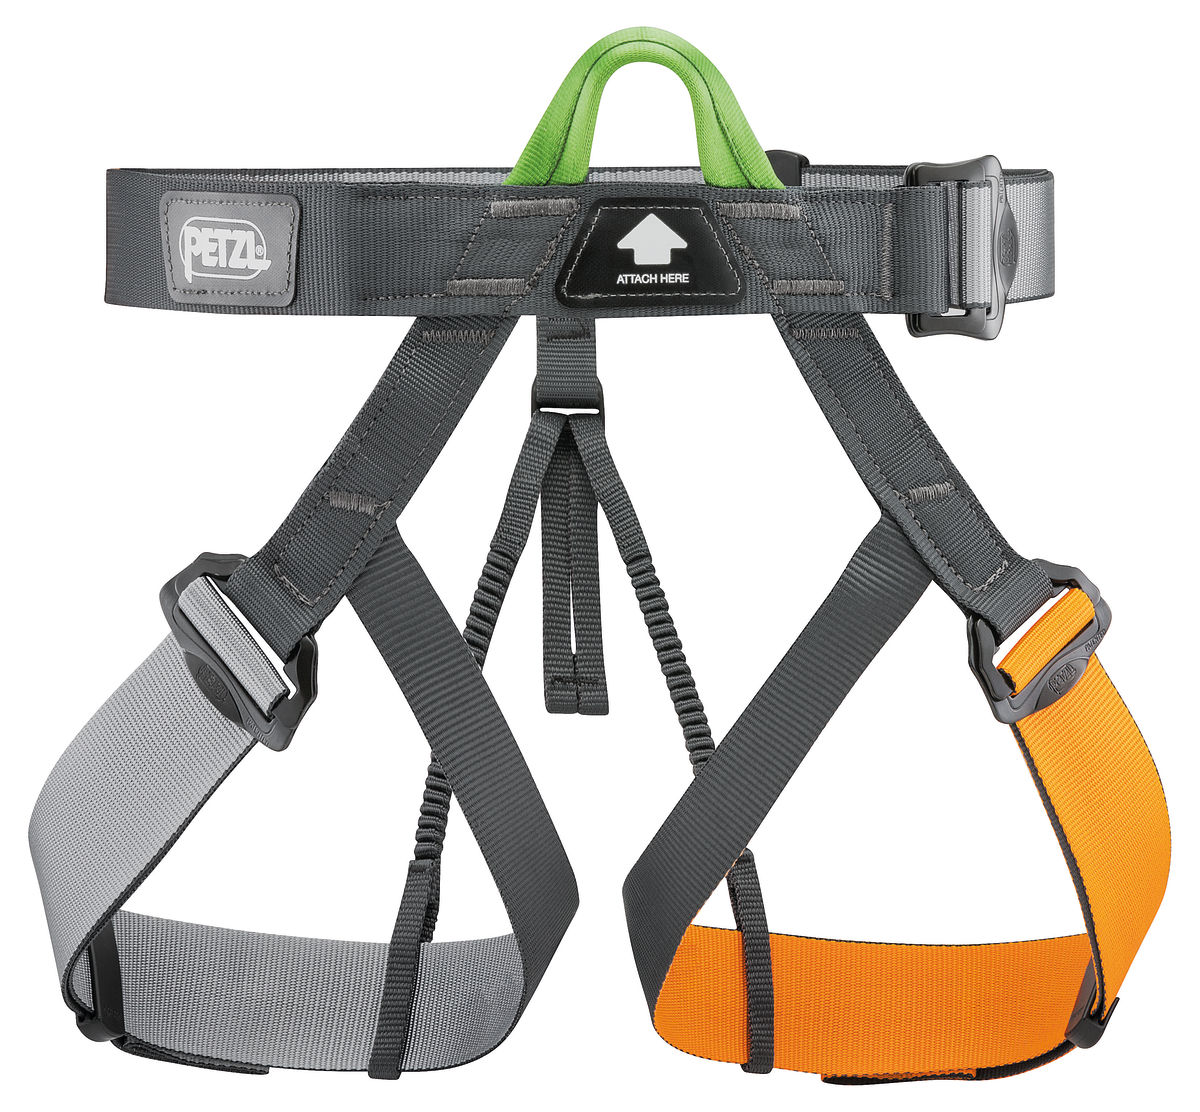 Adventure Park Harnesses